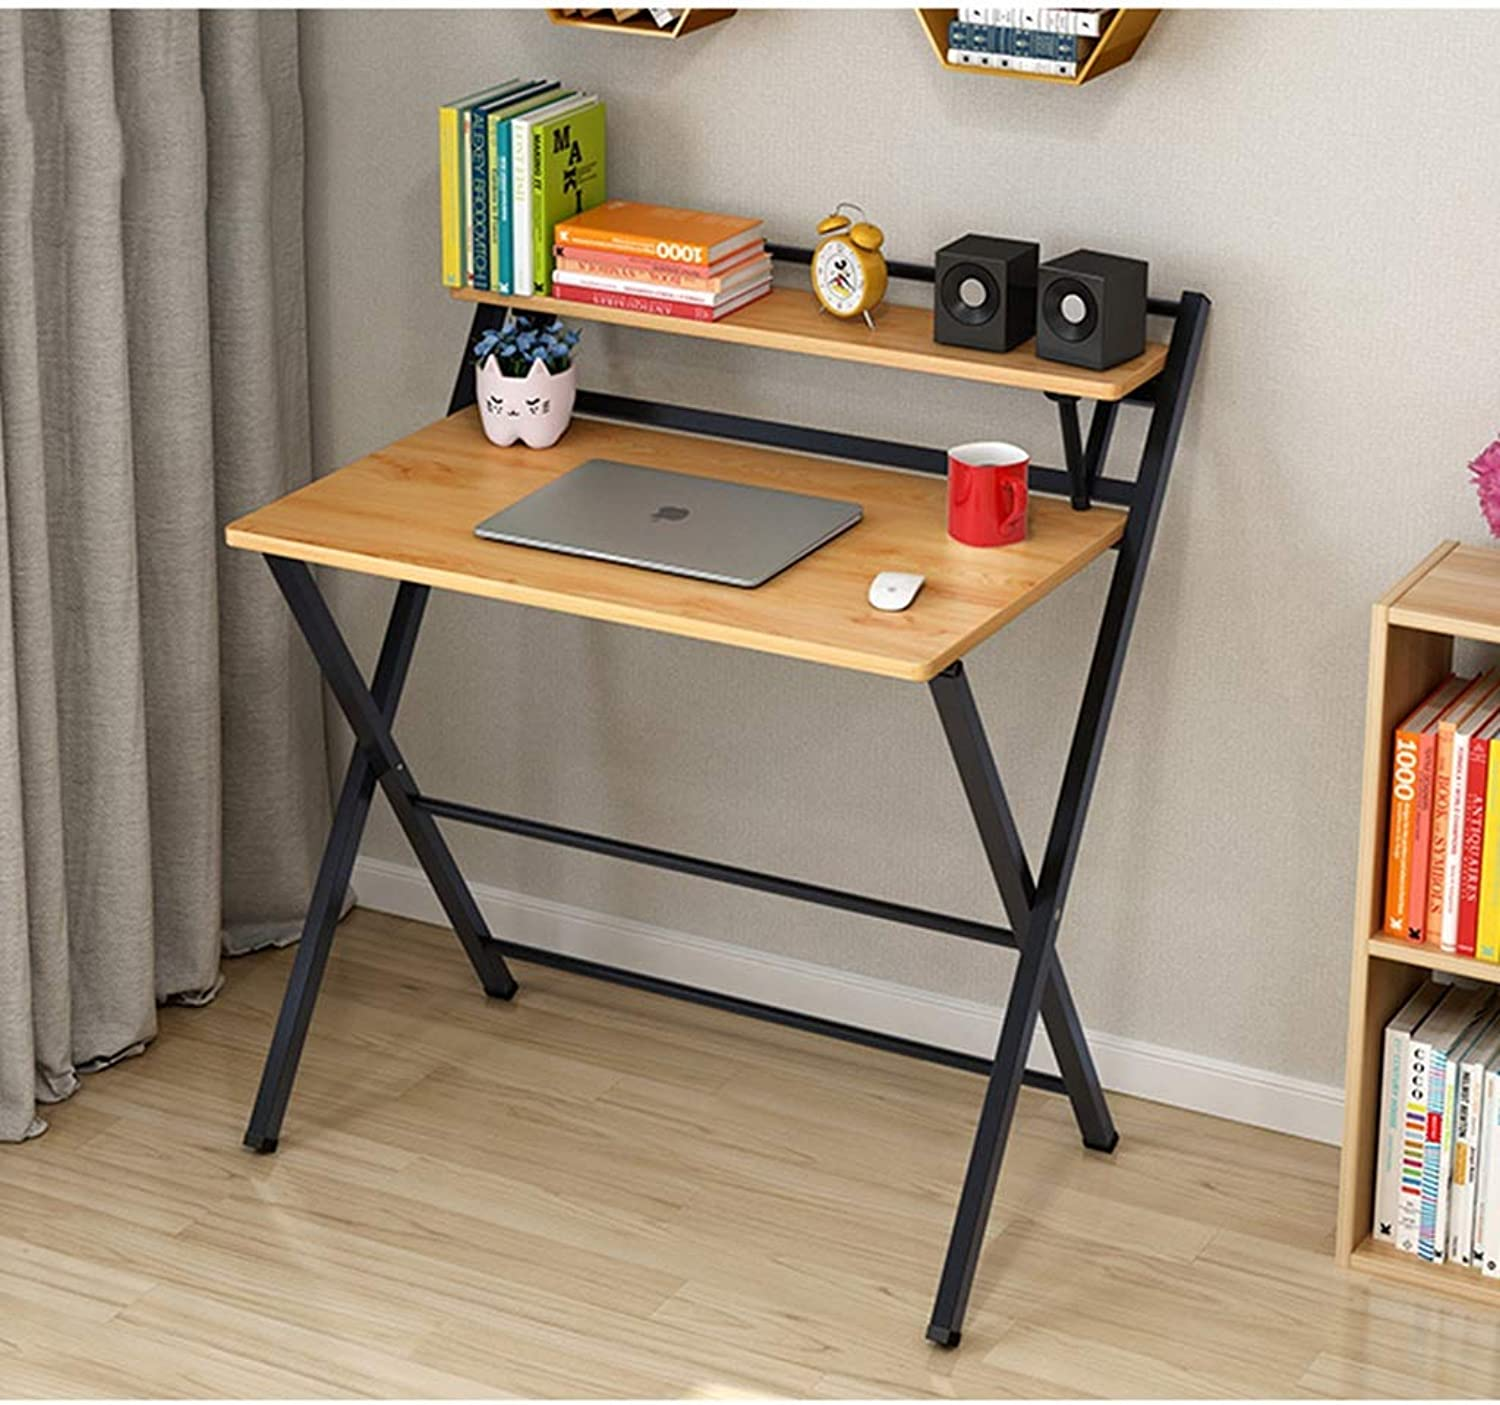 Folding Table, Fashion-Free Inssizetion X-Type Computer Desk, Multifunctional Small Table for Home Office